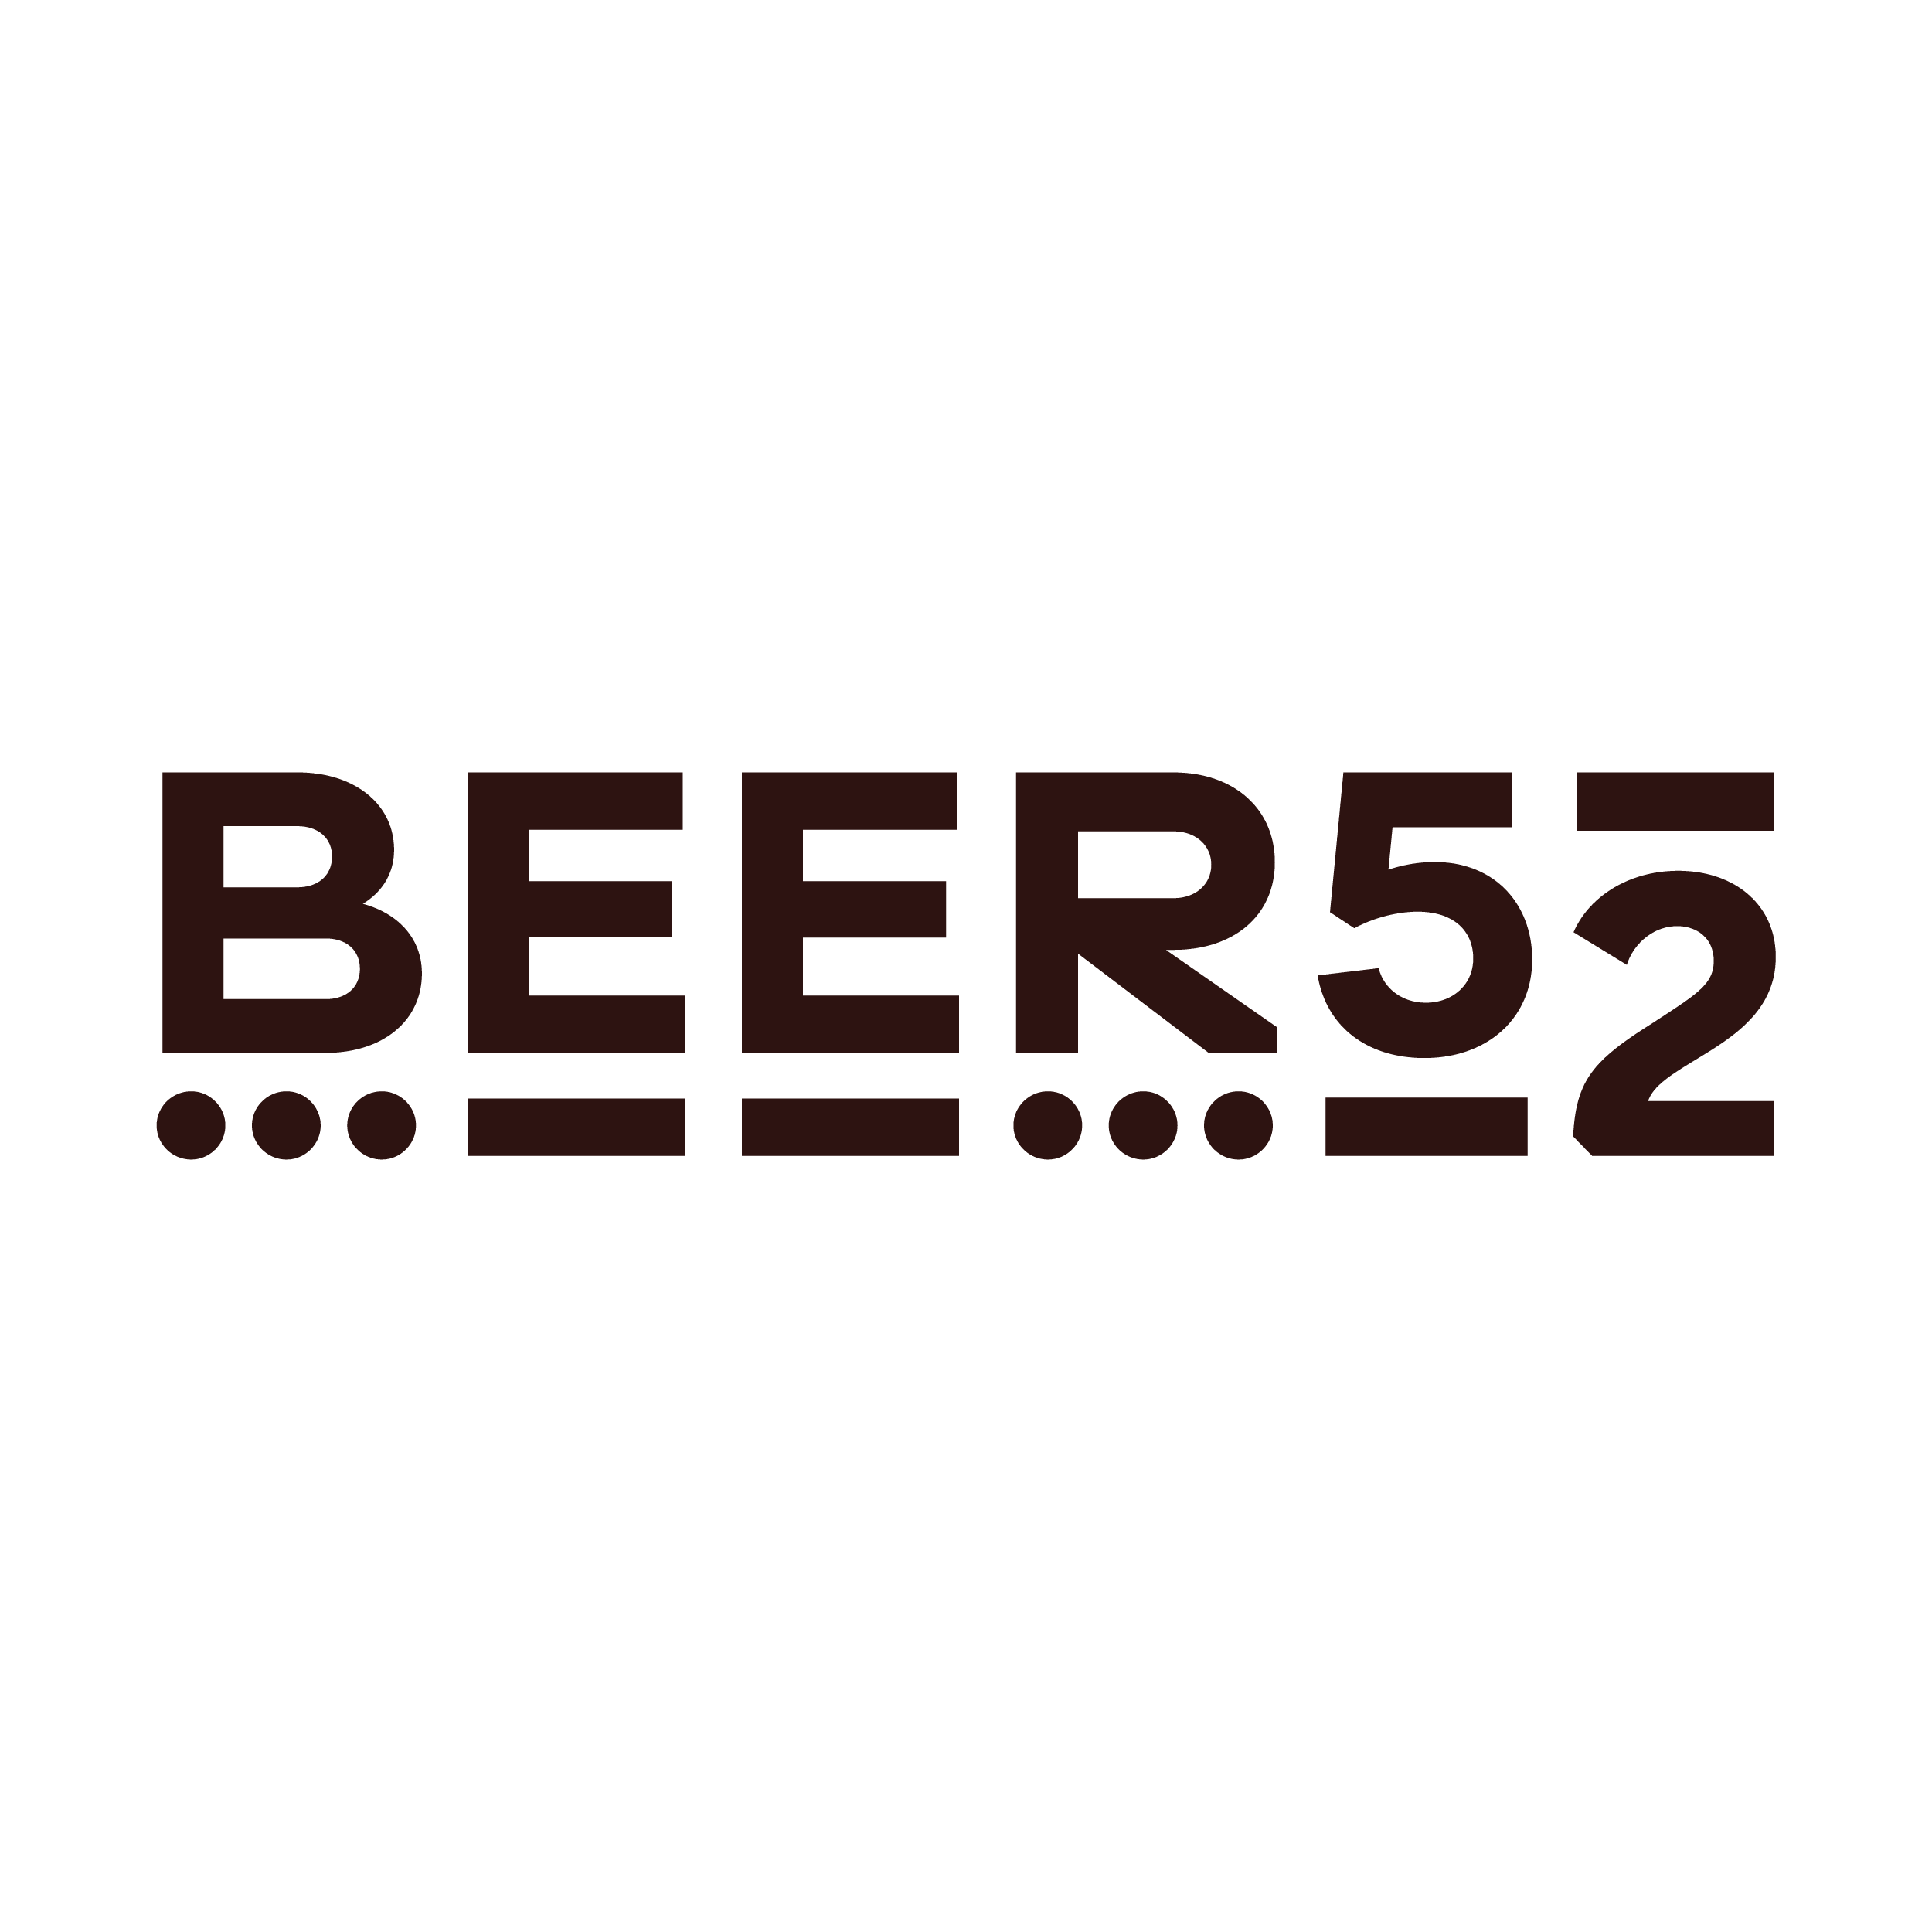 Beer52 Coupons & Promo Codes